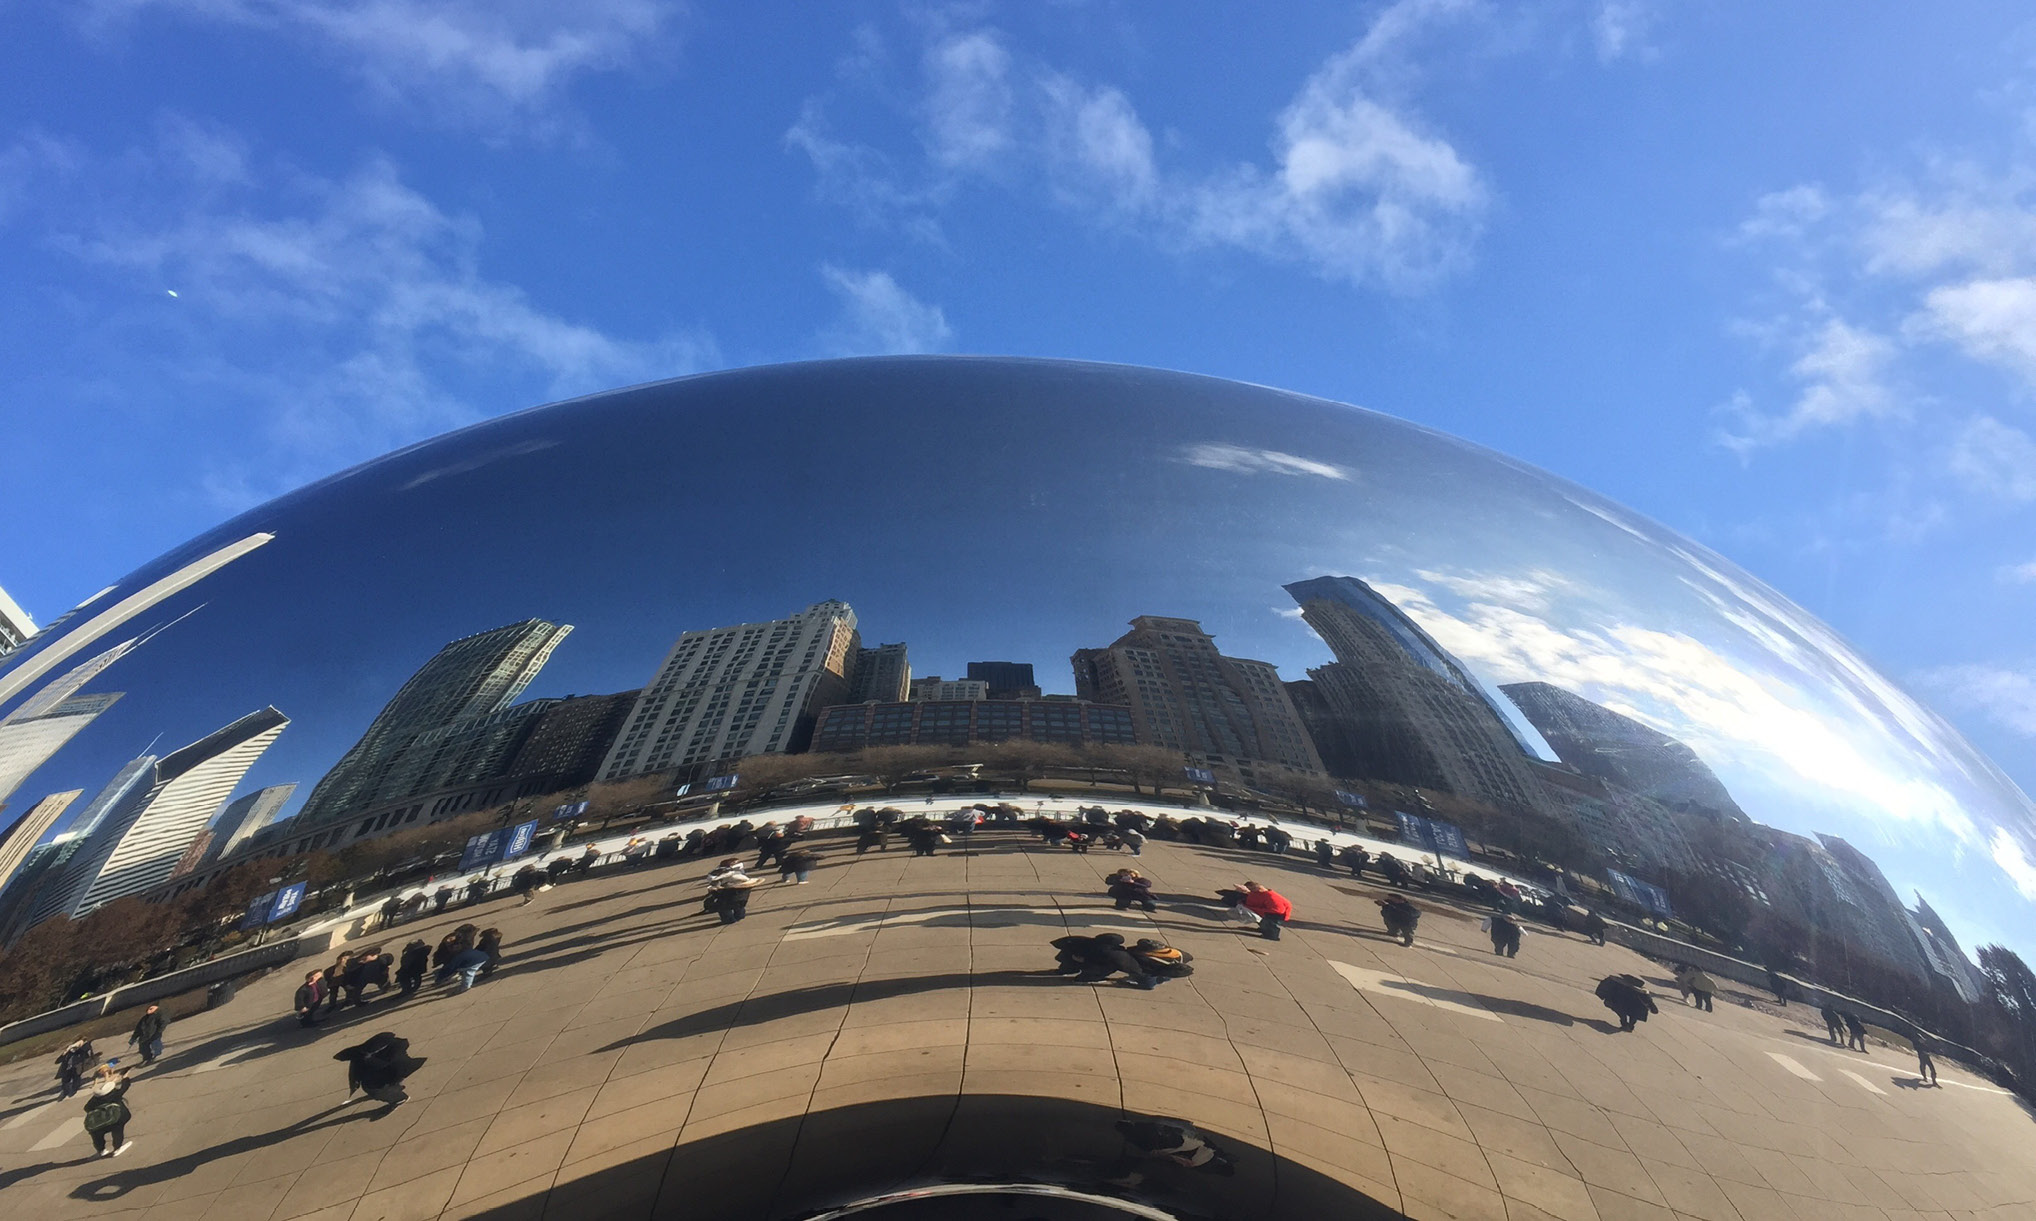 HKS London medical planner Wendy James has been exploring Chicago since her Xchange Fellowship began in the fall.